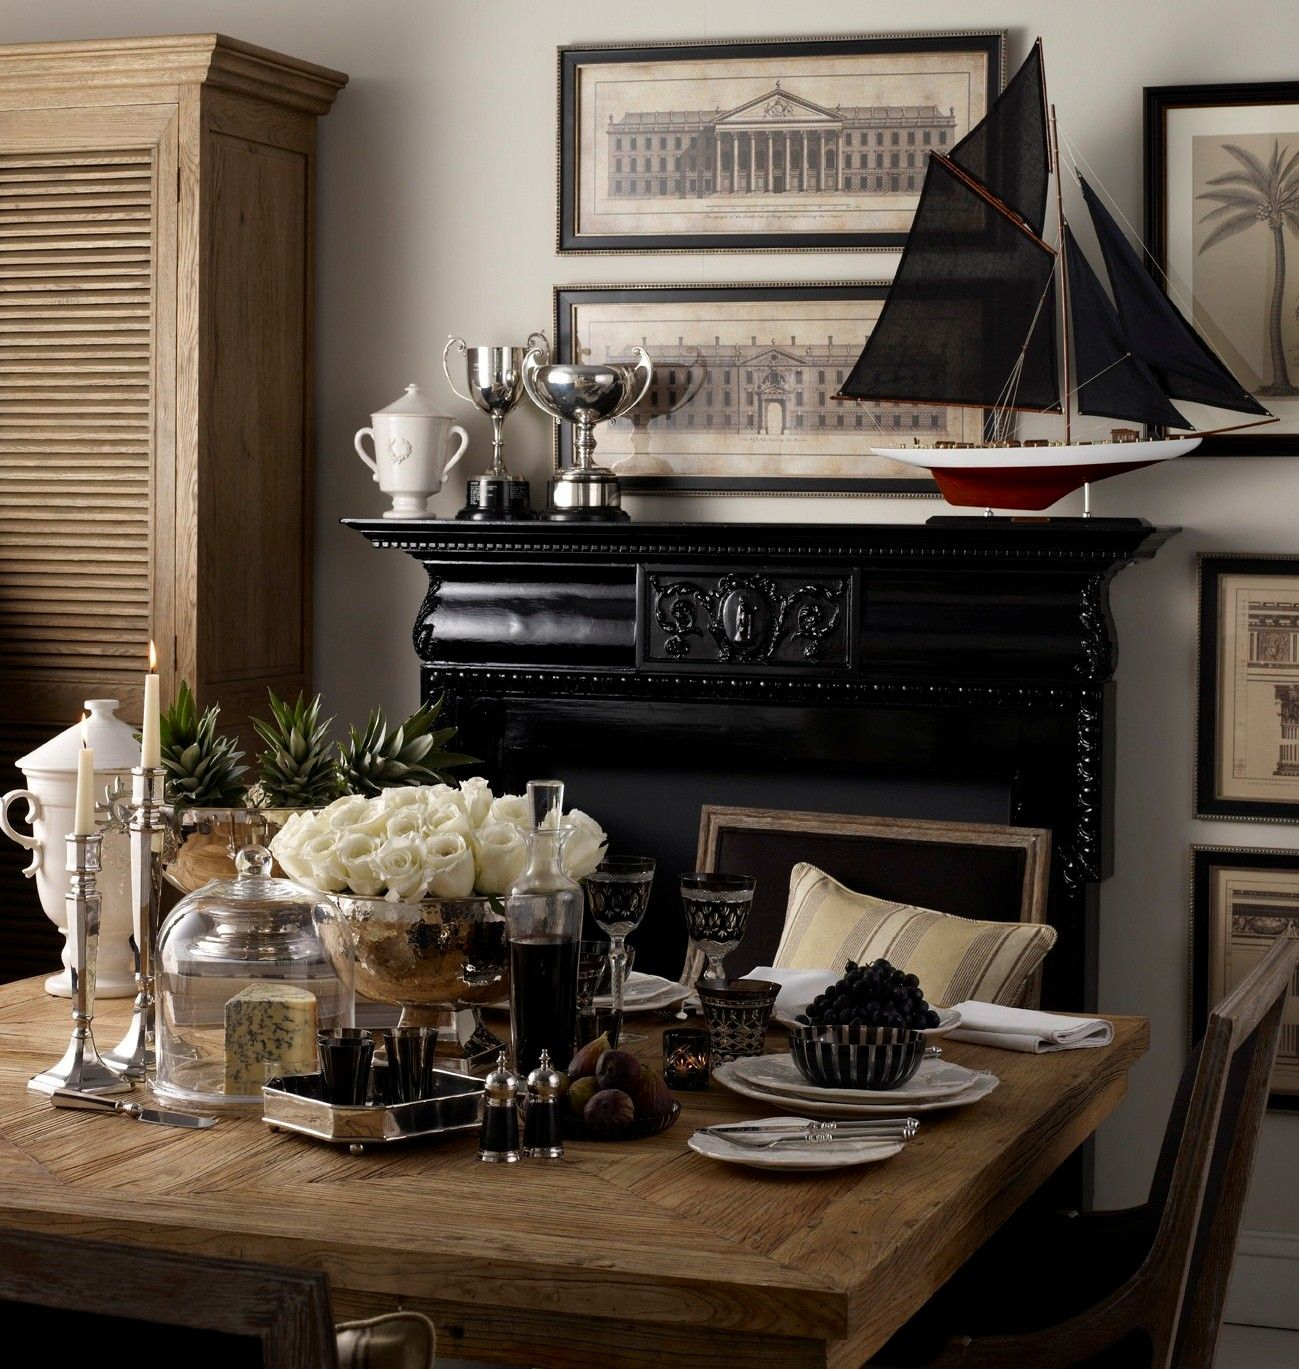 West Indies Interior Decorating Style Spring Summer 2012 British Colonial 3 Pinterest